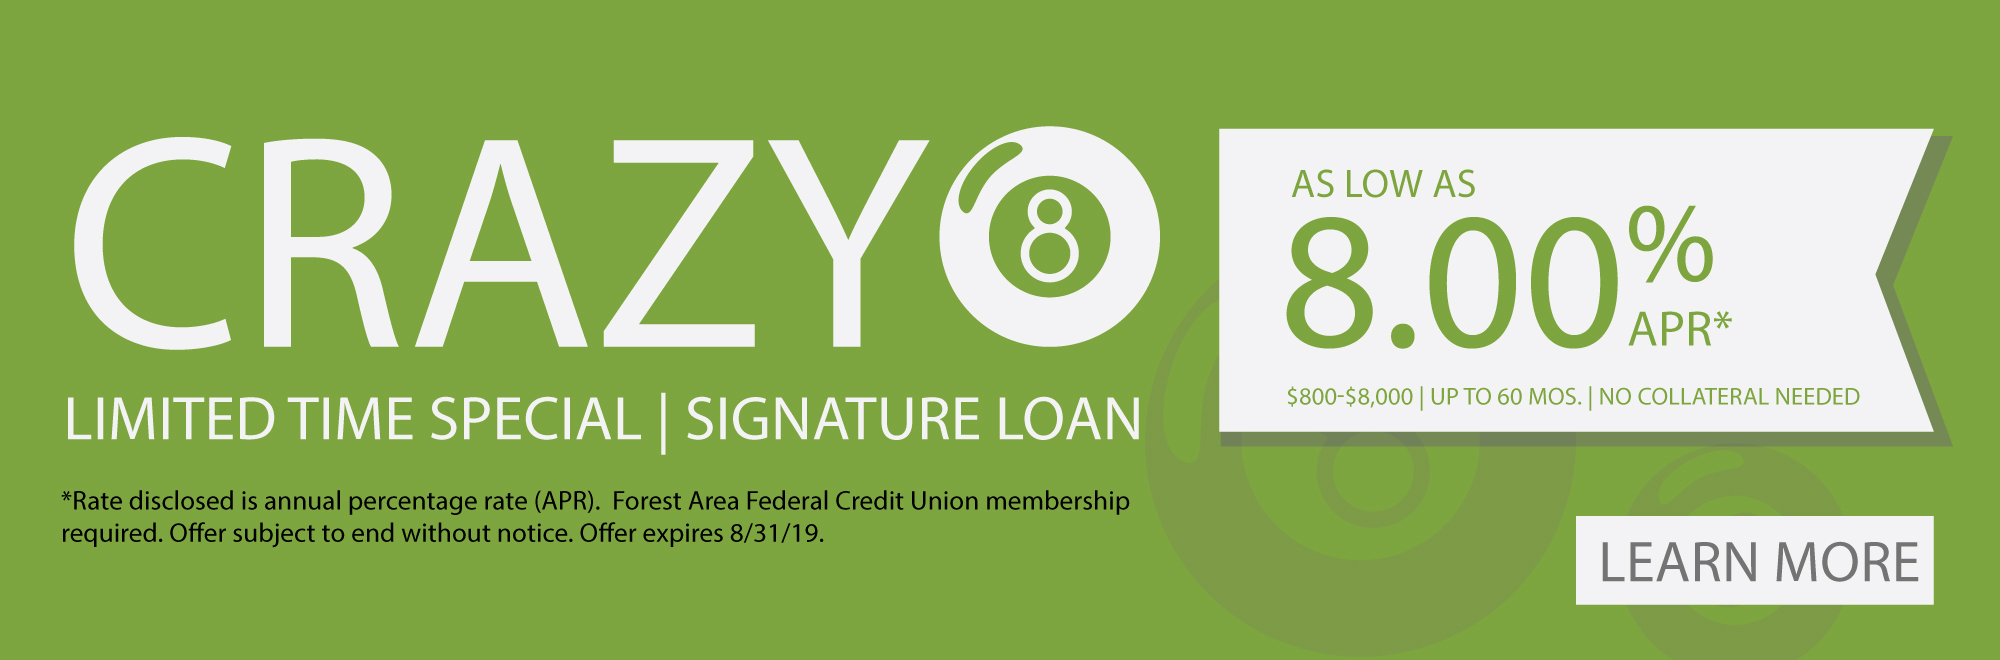 Cray 8 loan special 8.00% APR for Signature loans